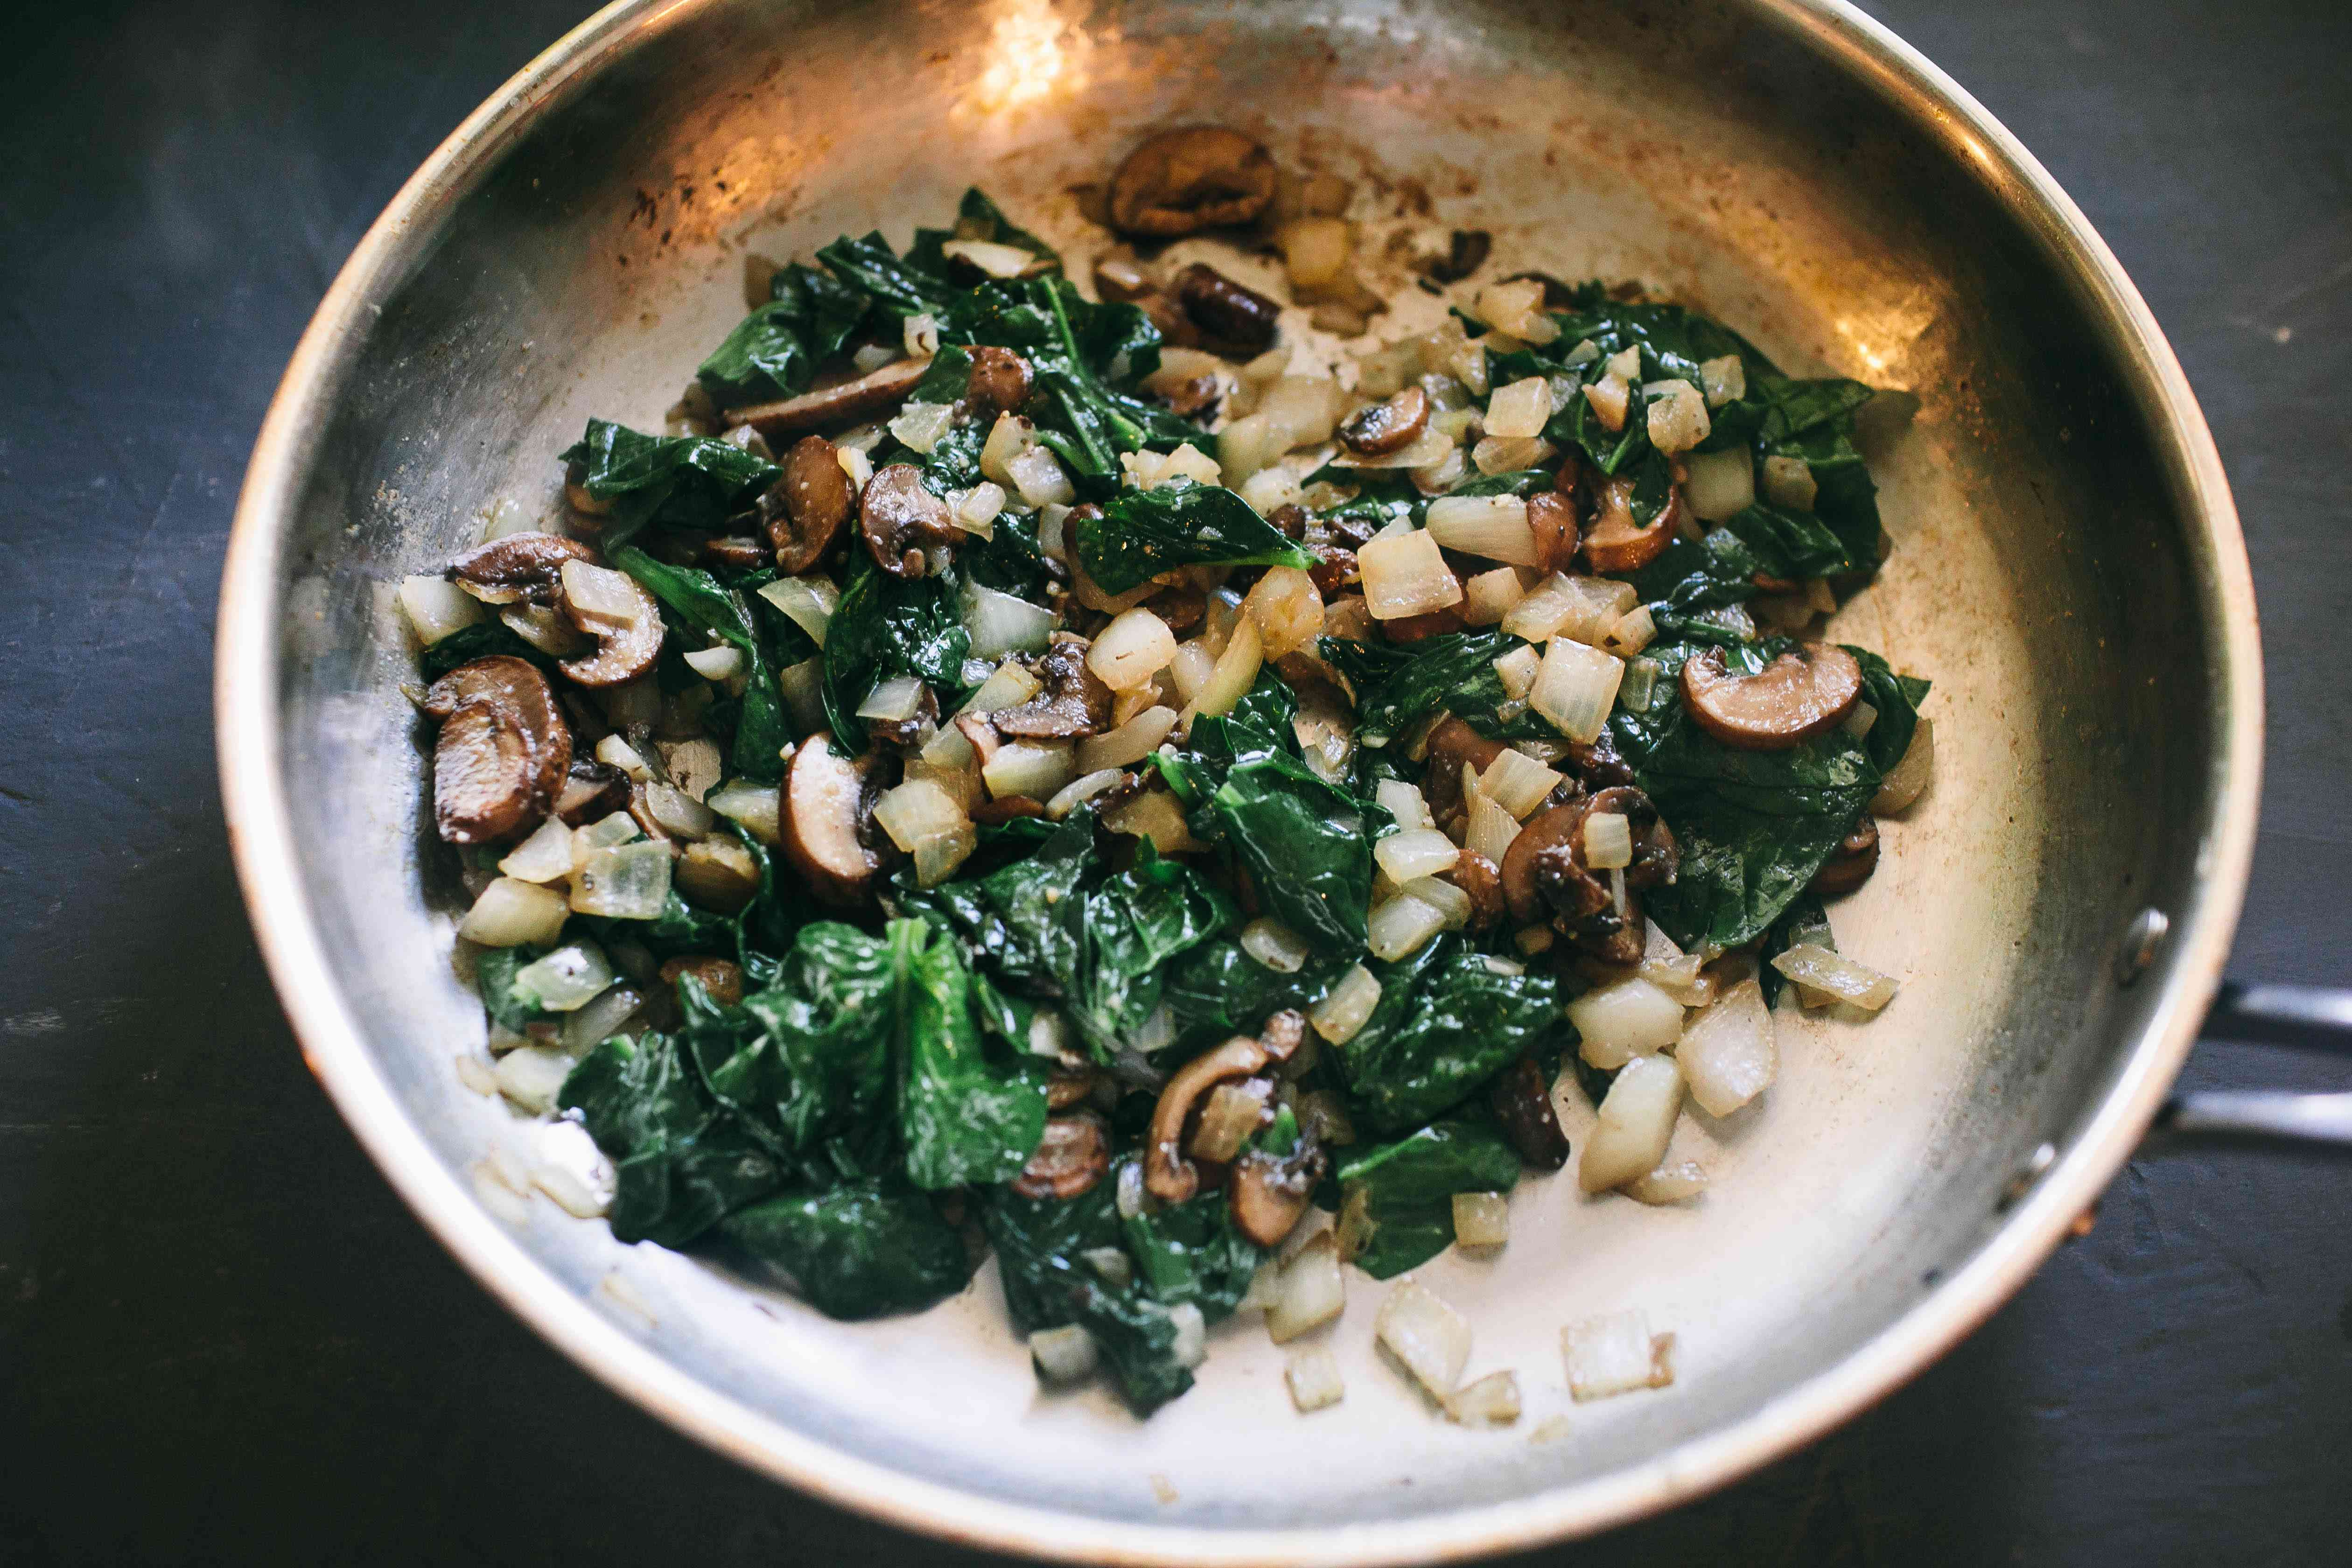 saute spinach with onions and mushrooms